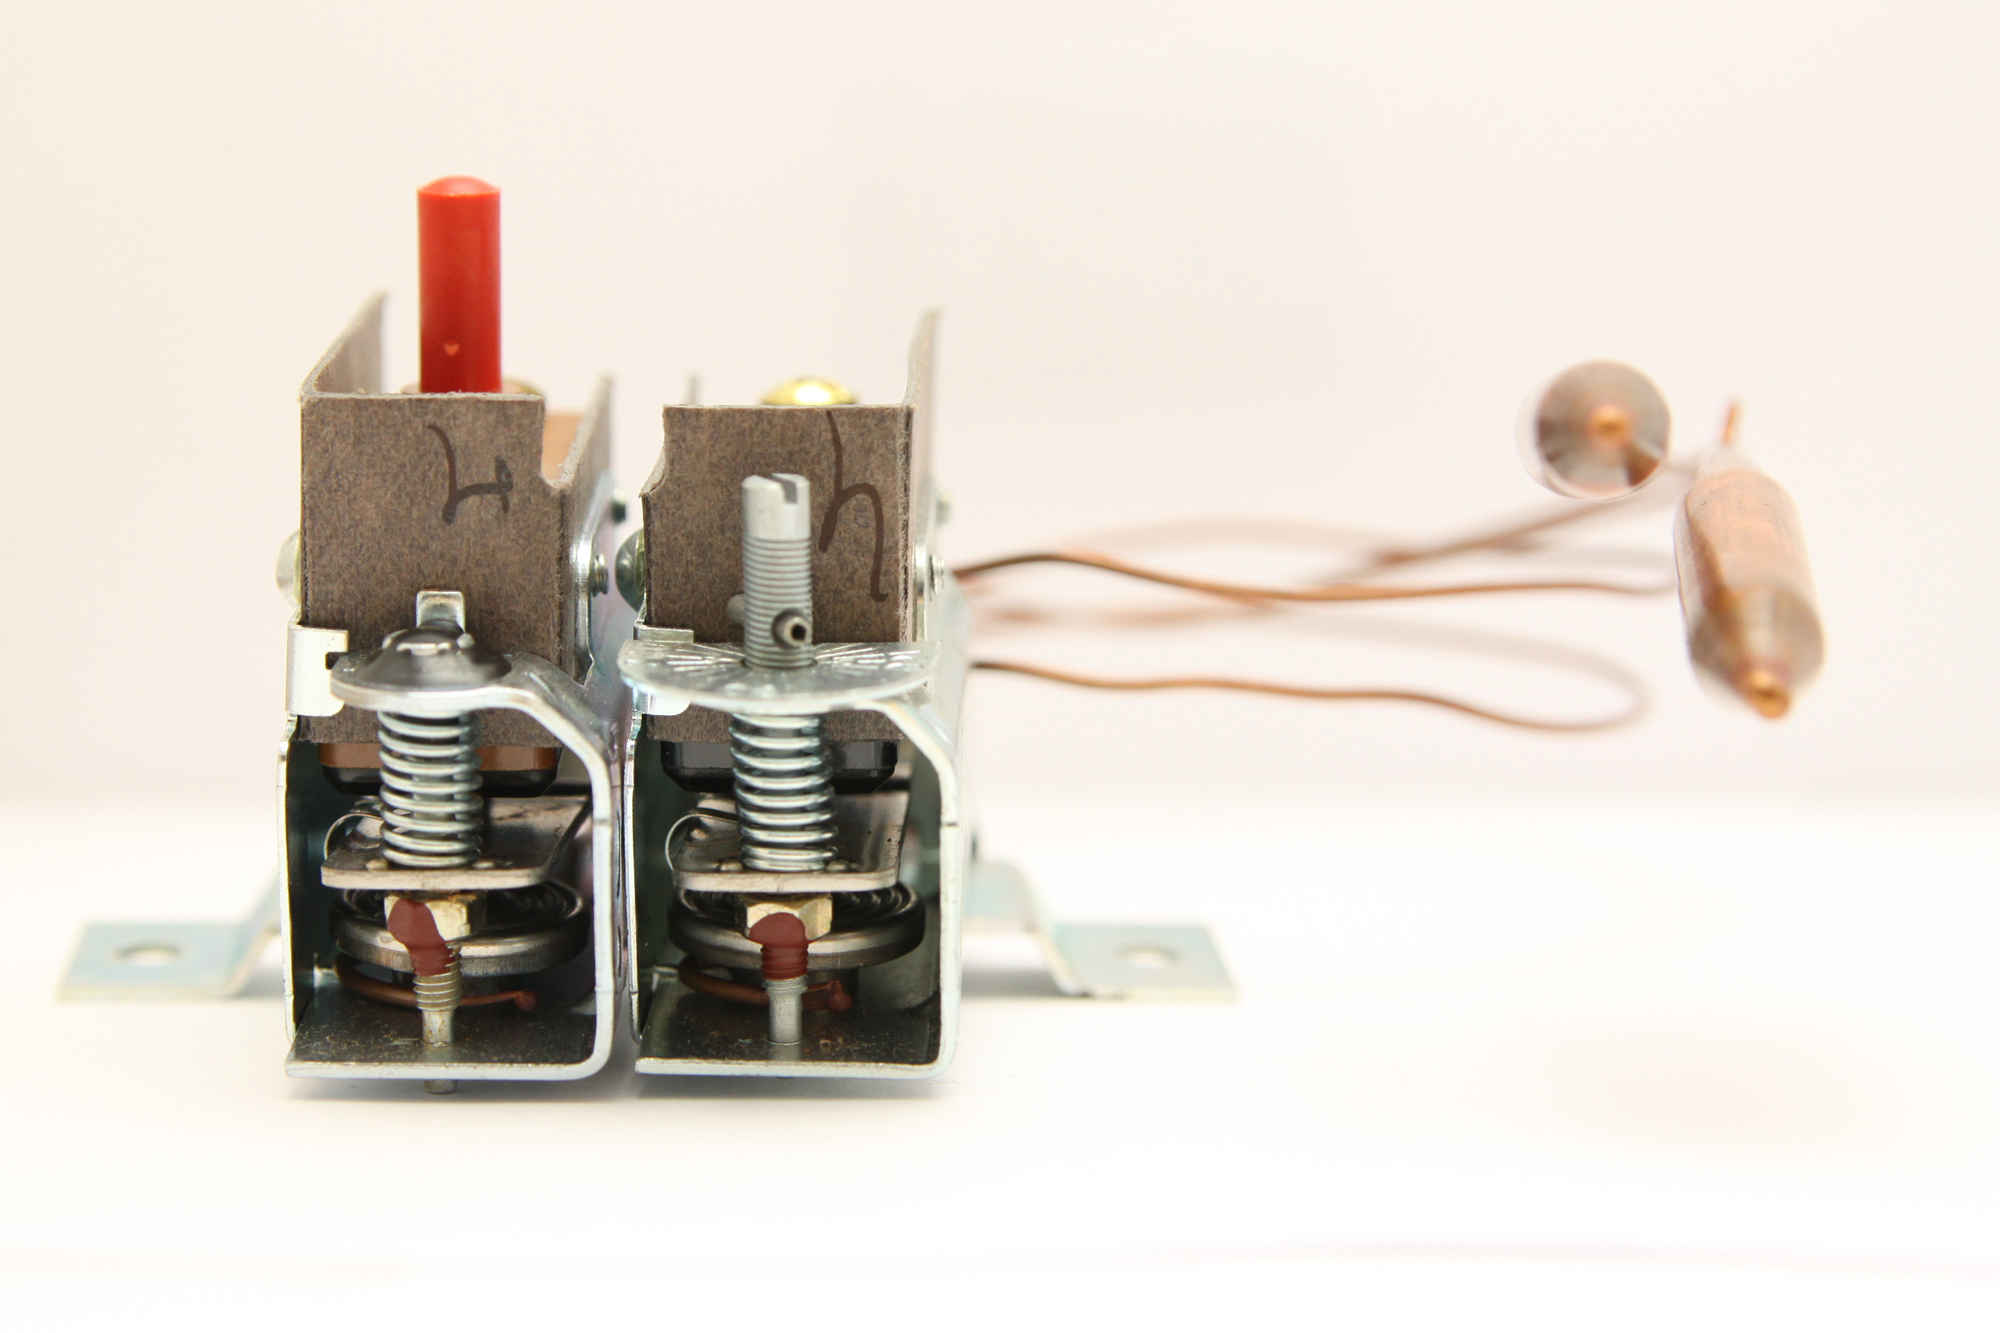 Adjustable Temperature Switches